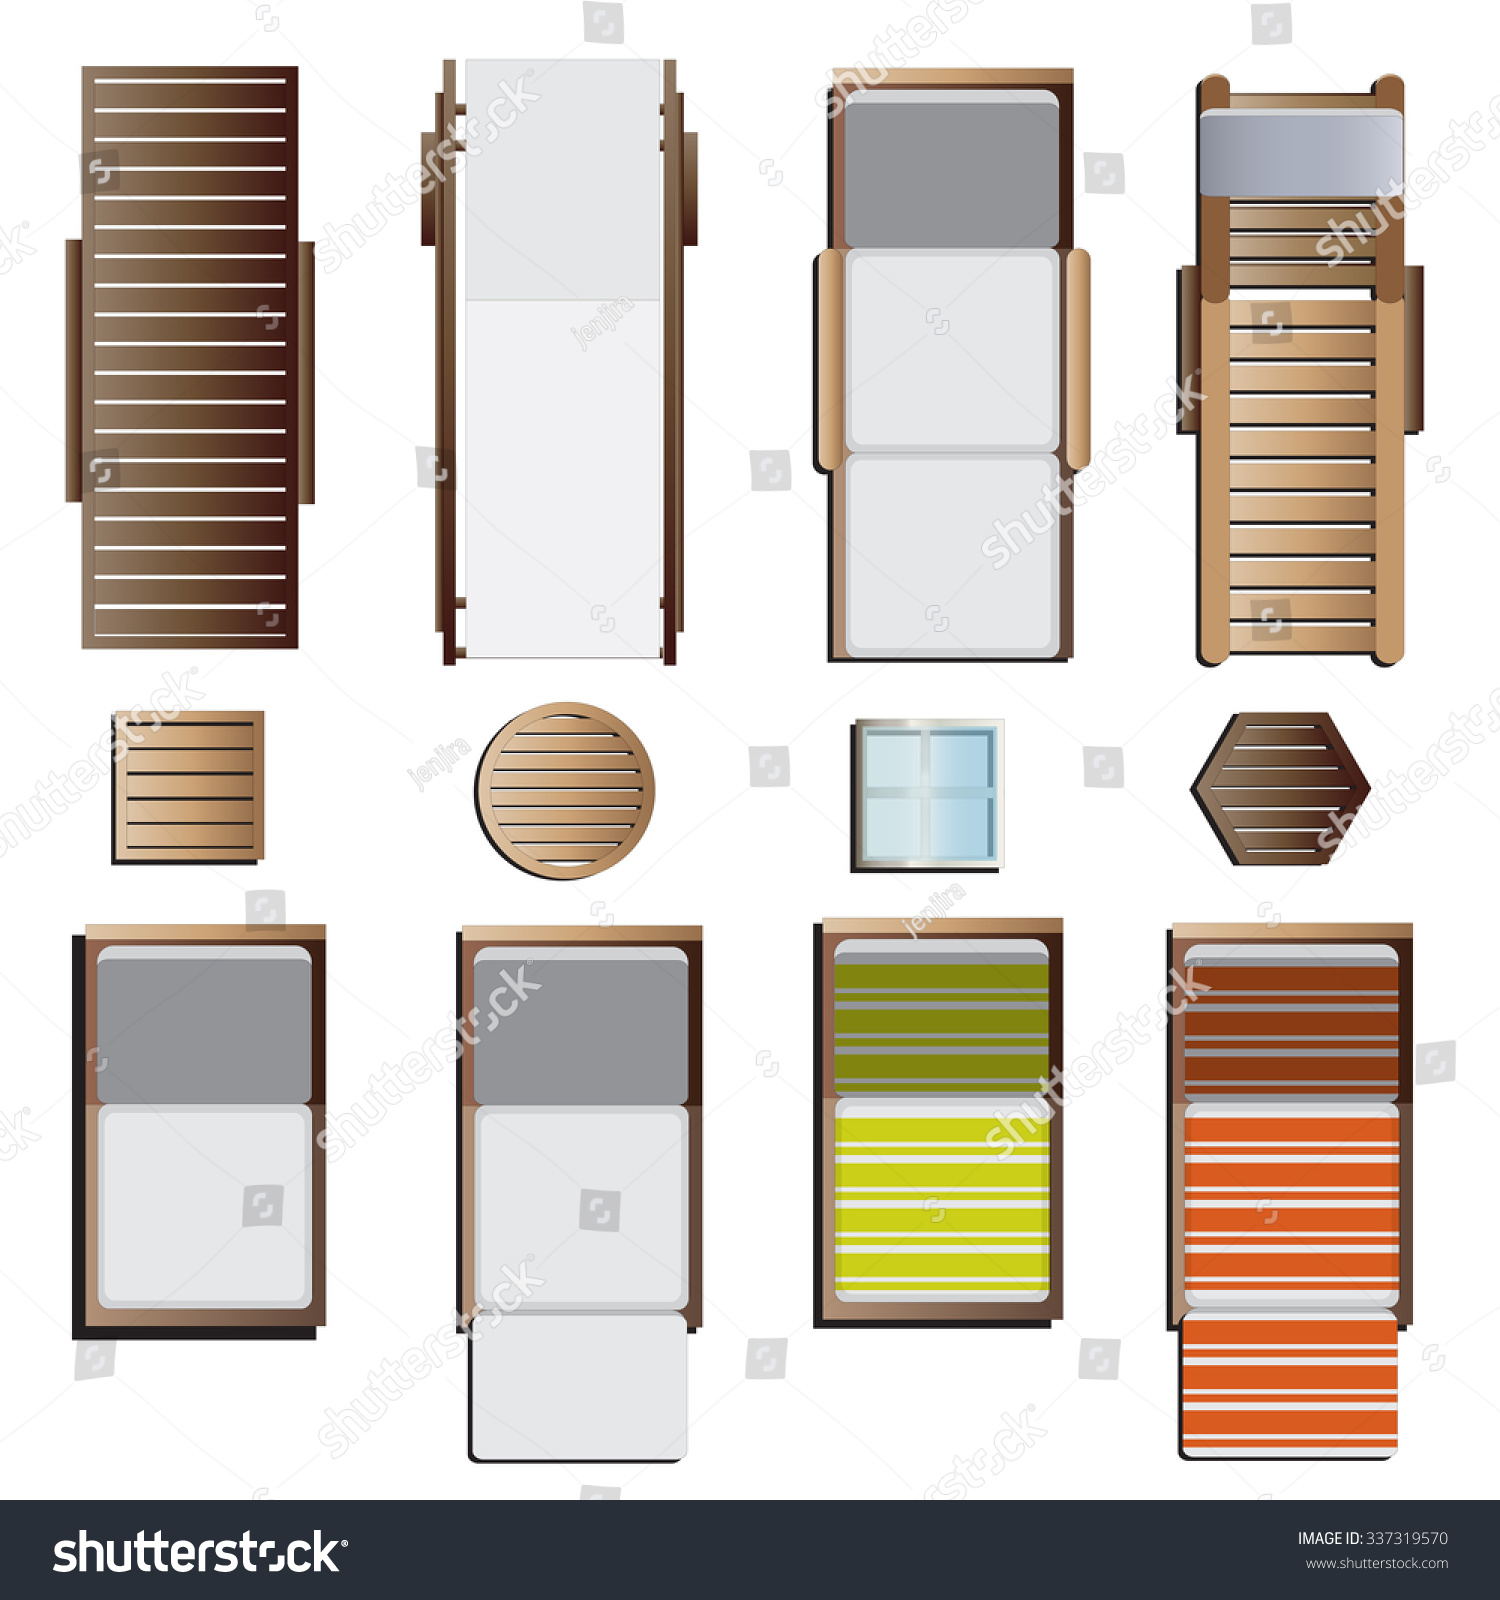 Beach lounge chair drawing - Outdoor Furniture Sunbeds Set Top View Stock Vector